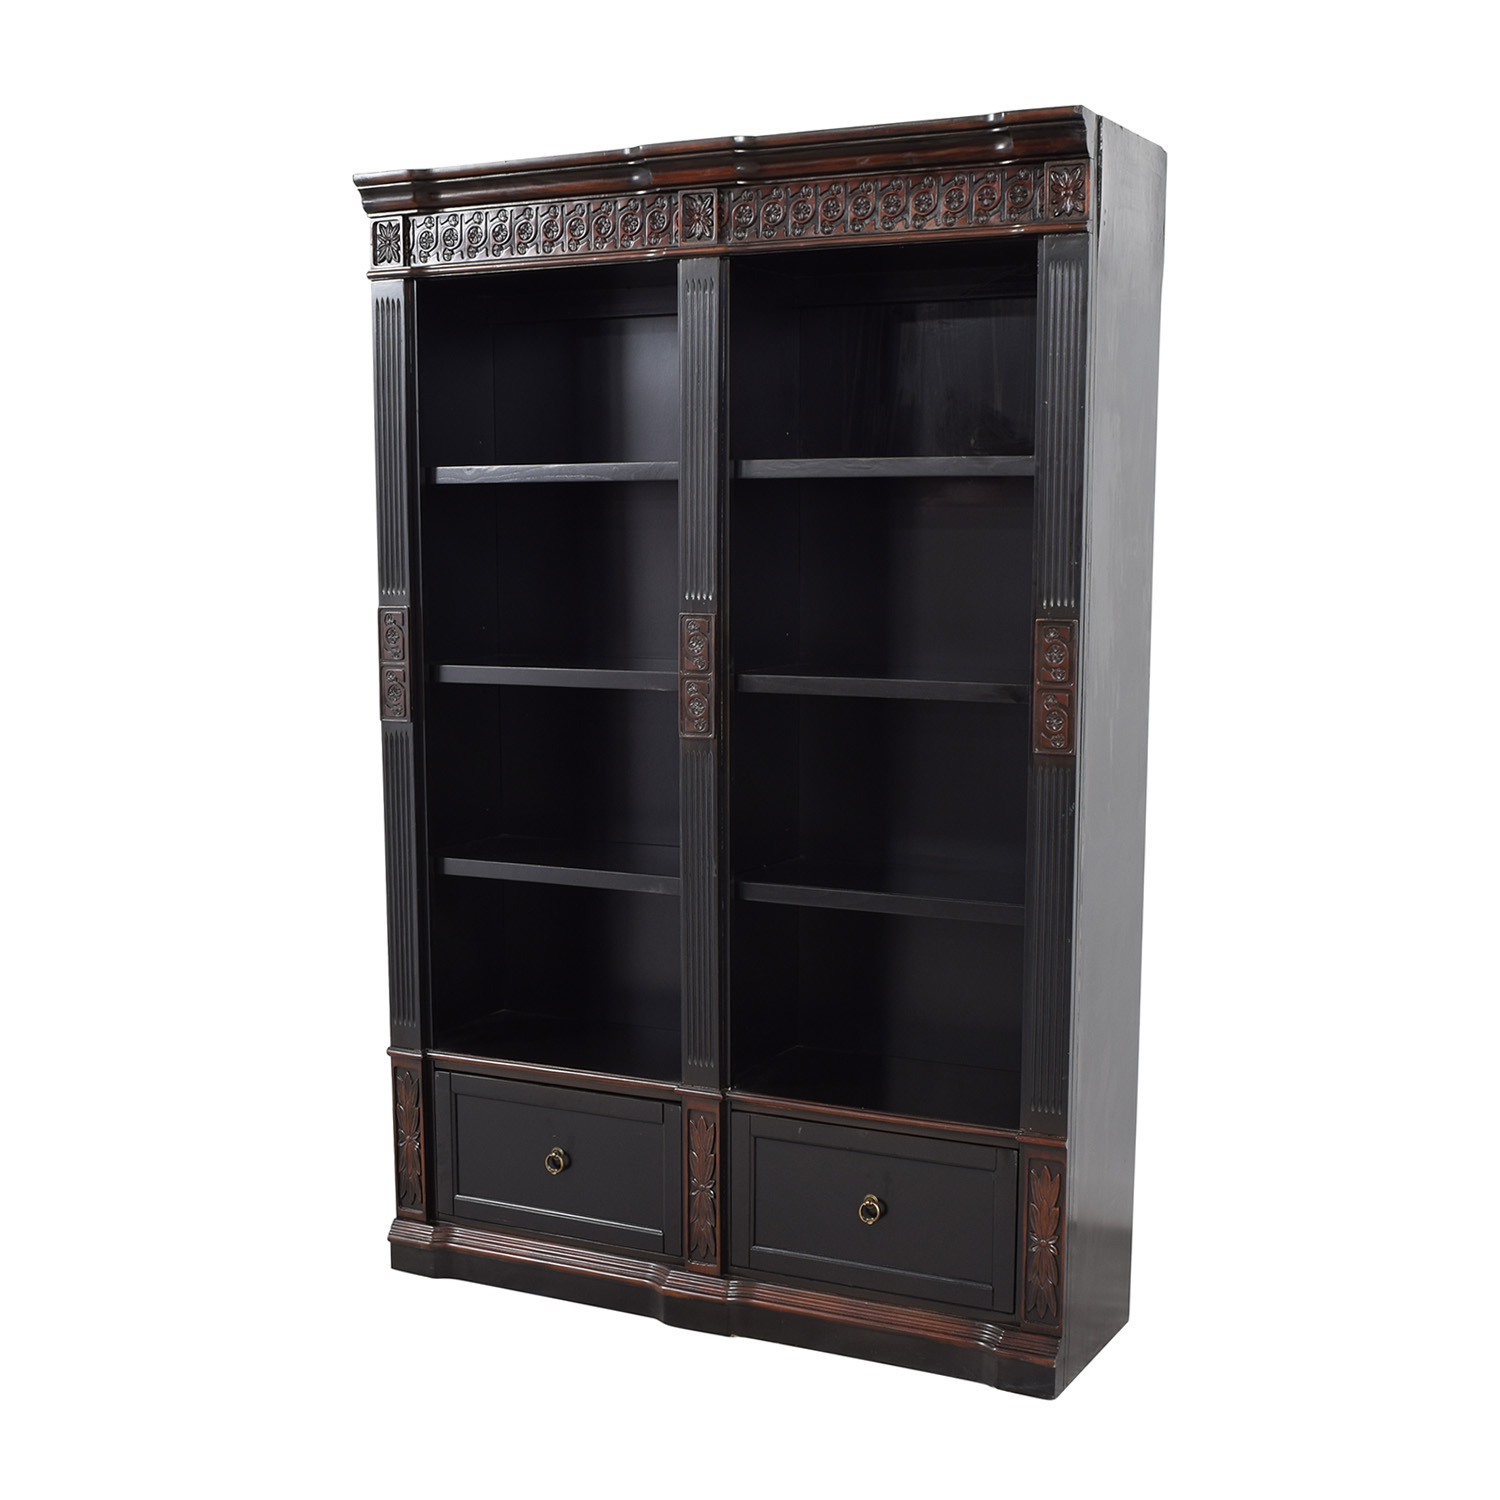 shop Coaster Furniture Coaster Furnitiure Nicolas Traditional Carved Double Bookcase online